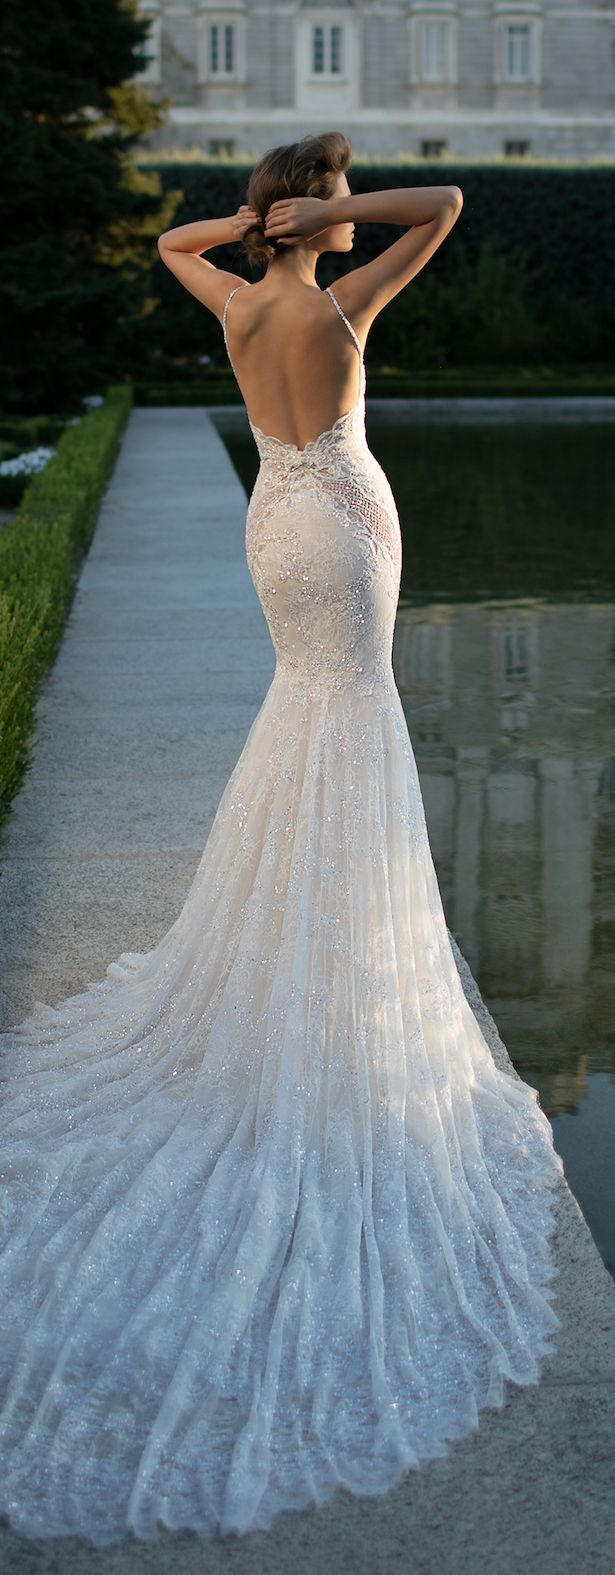 Wedding-Dresses 23